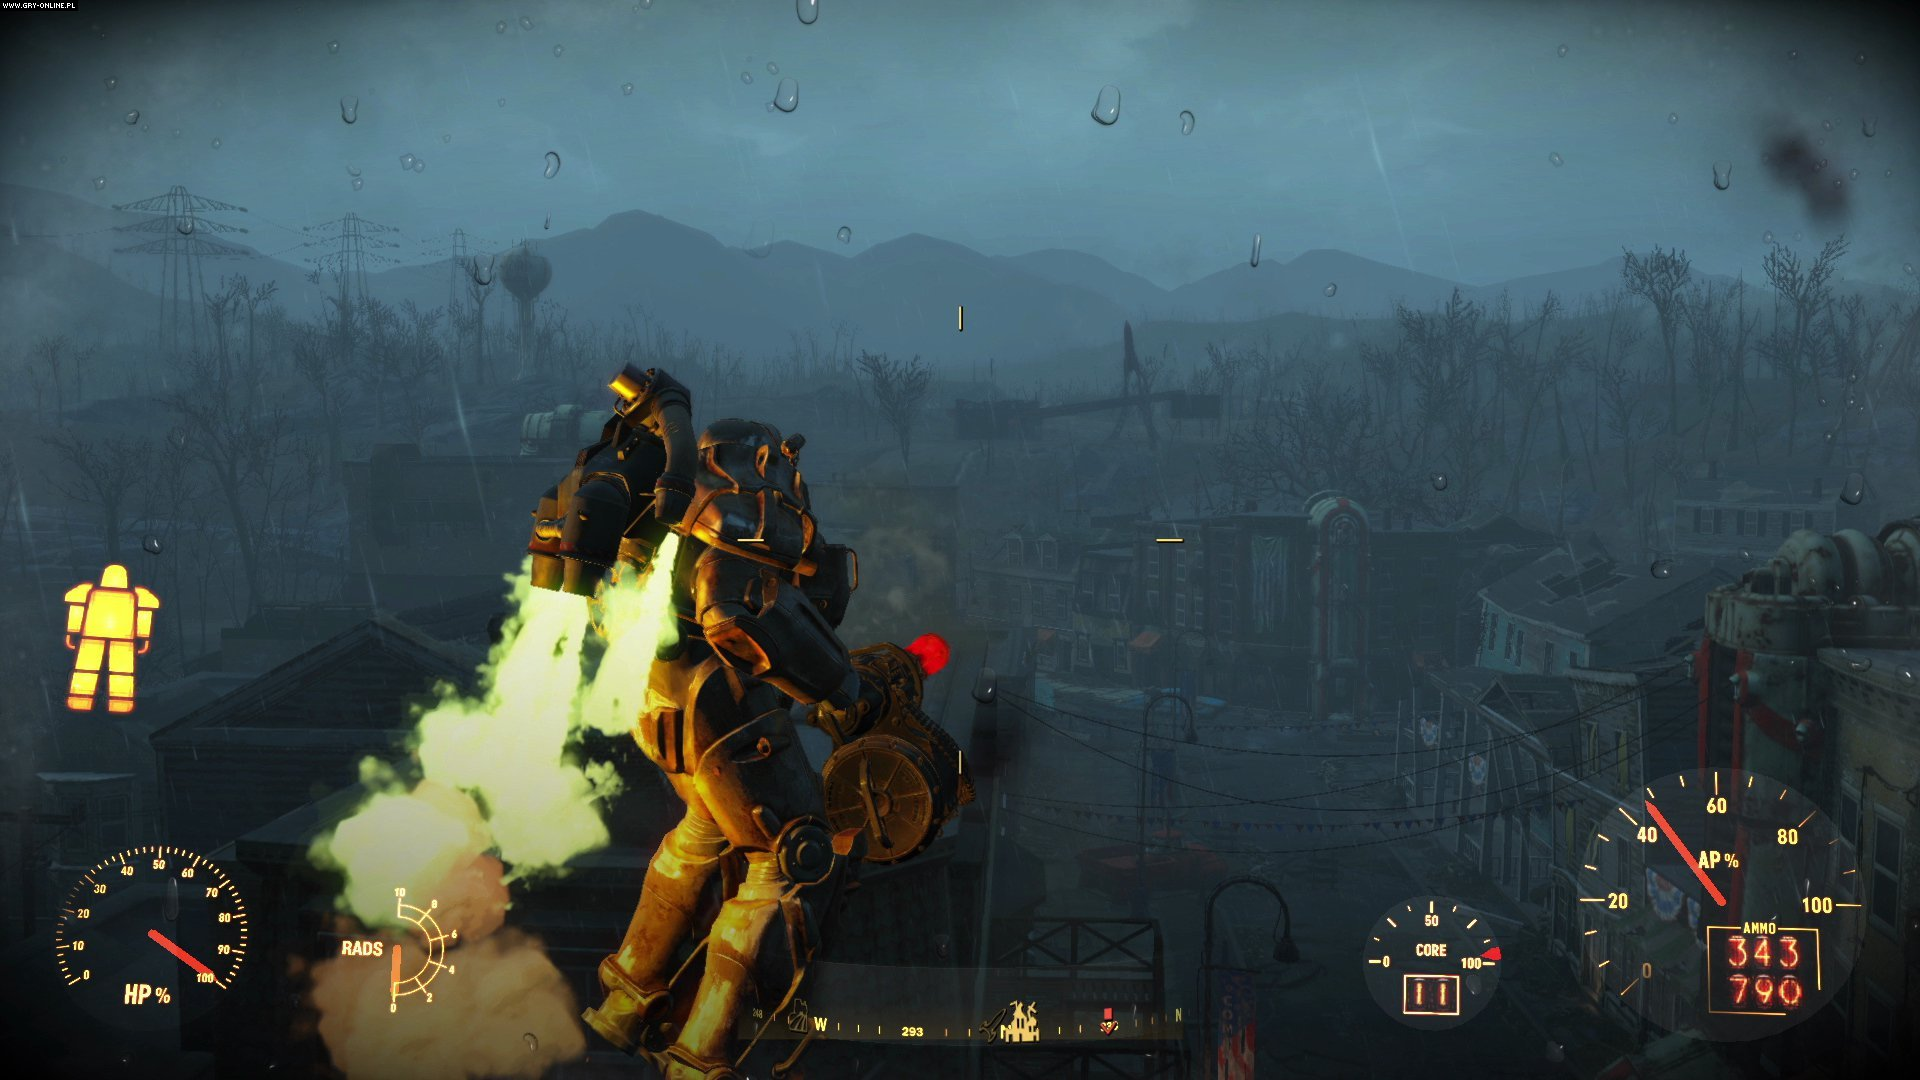 Fallout 4 PC, PS4, XONE Games Image 77/109, Bethesda Softworks